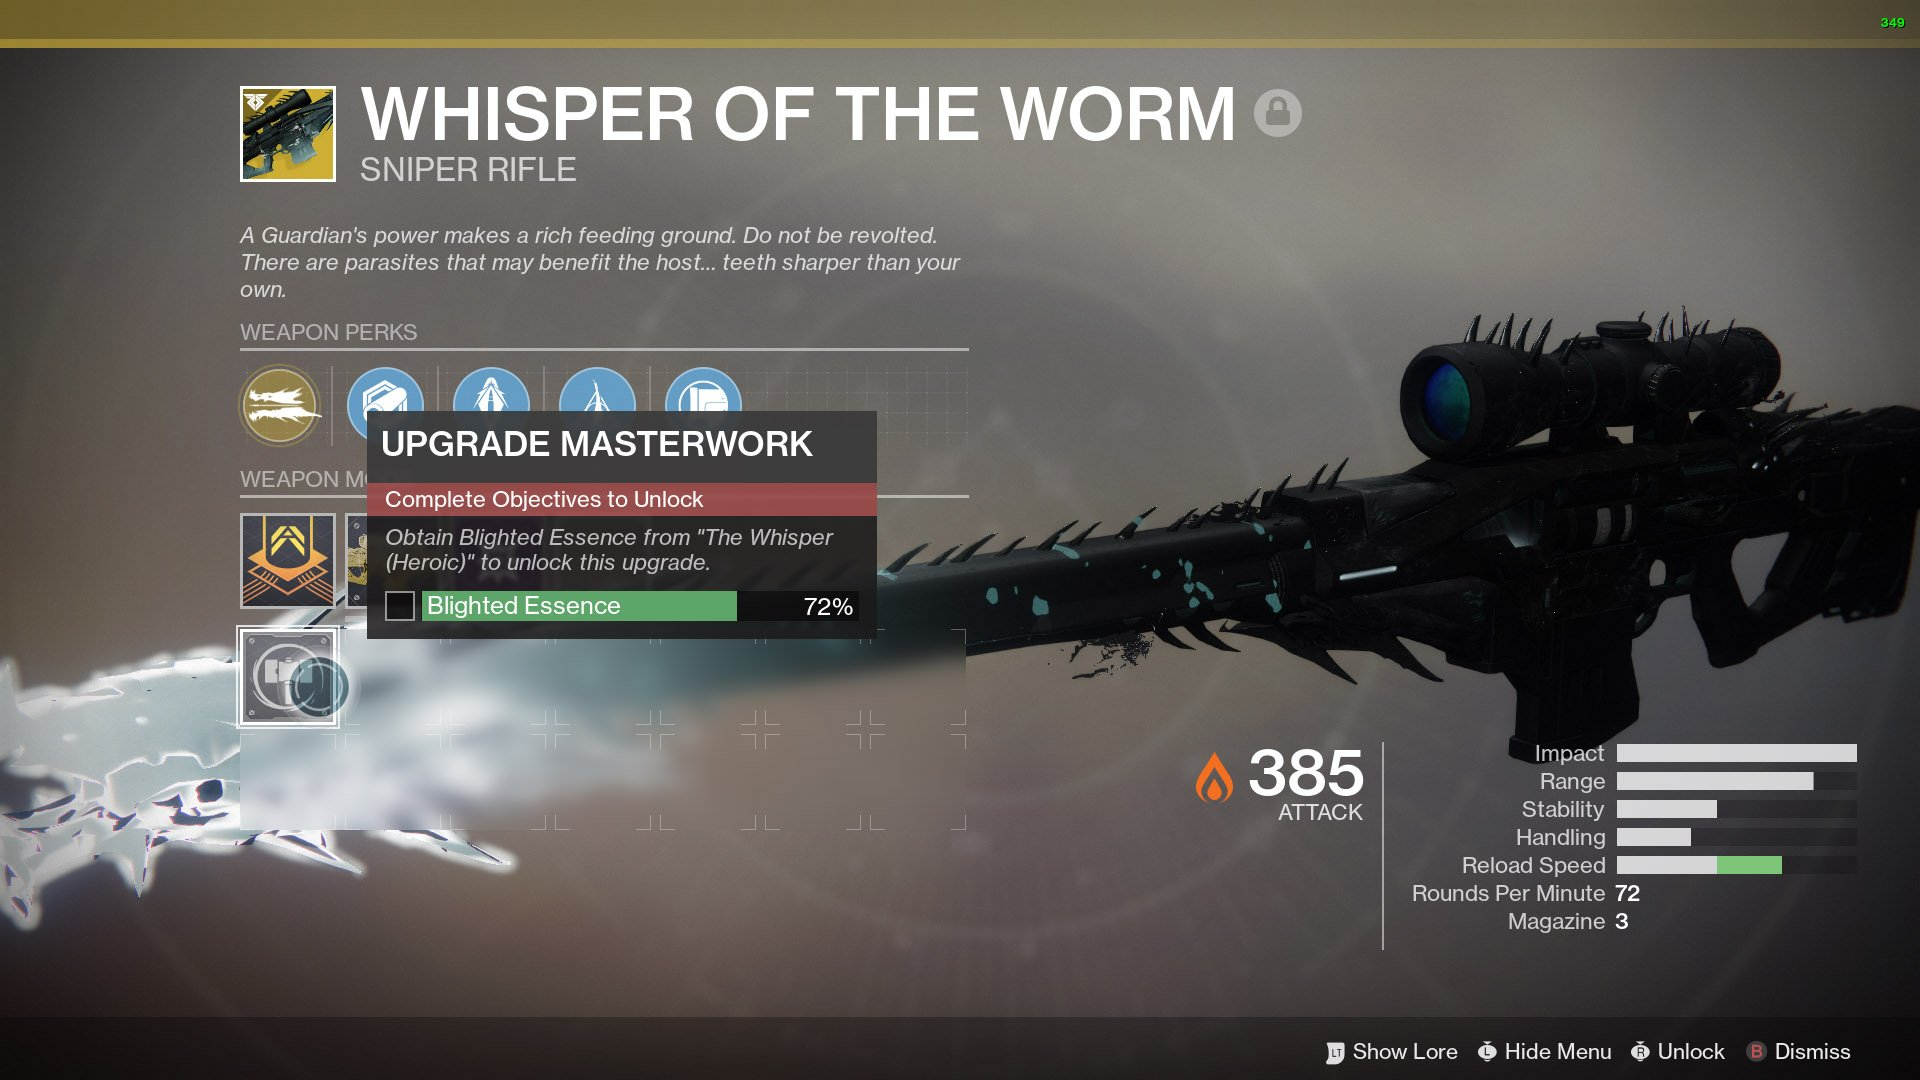 Destiny 2 Whisper of the Worm